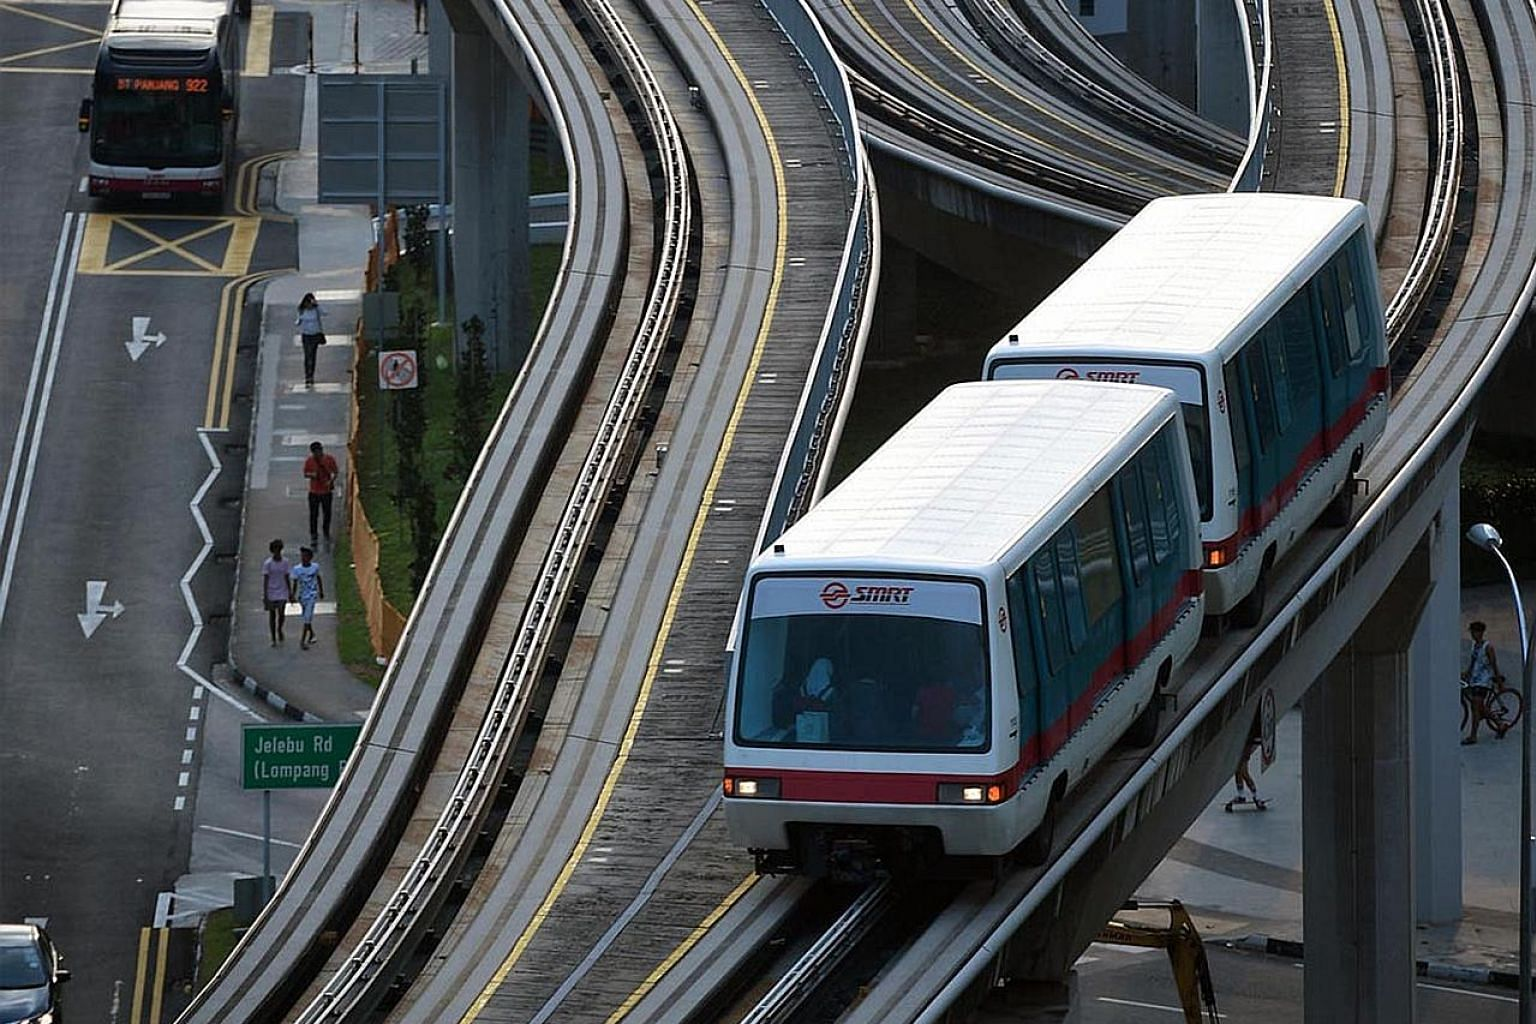 The Bukit Panjang LRT system is being overhauled by Bombardier Transportation, which French train-maker Alstom plans to buy. The two companies are competitors in supplying railway vehicles, including passenger carriages and infrastructure, for MRT li